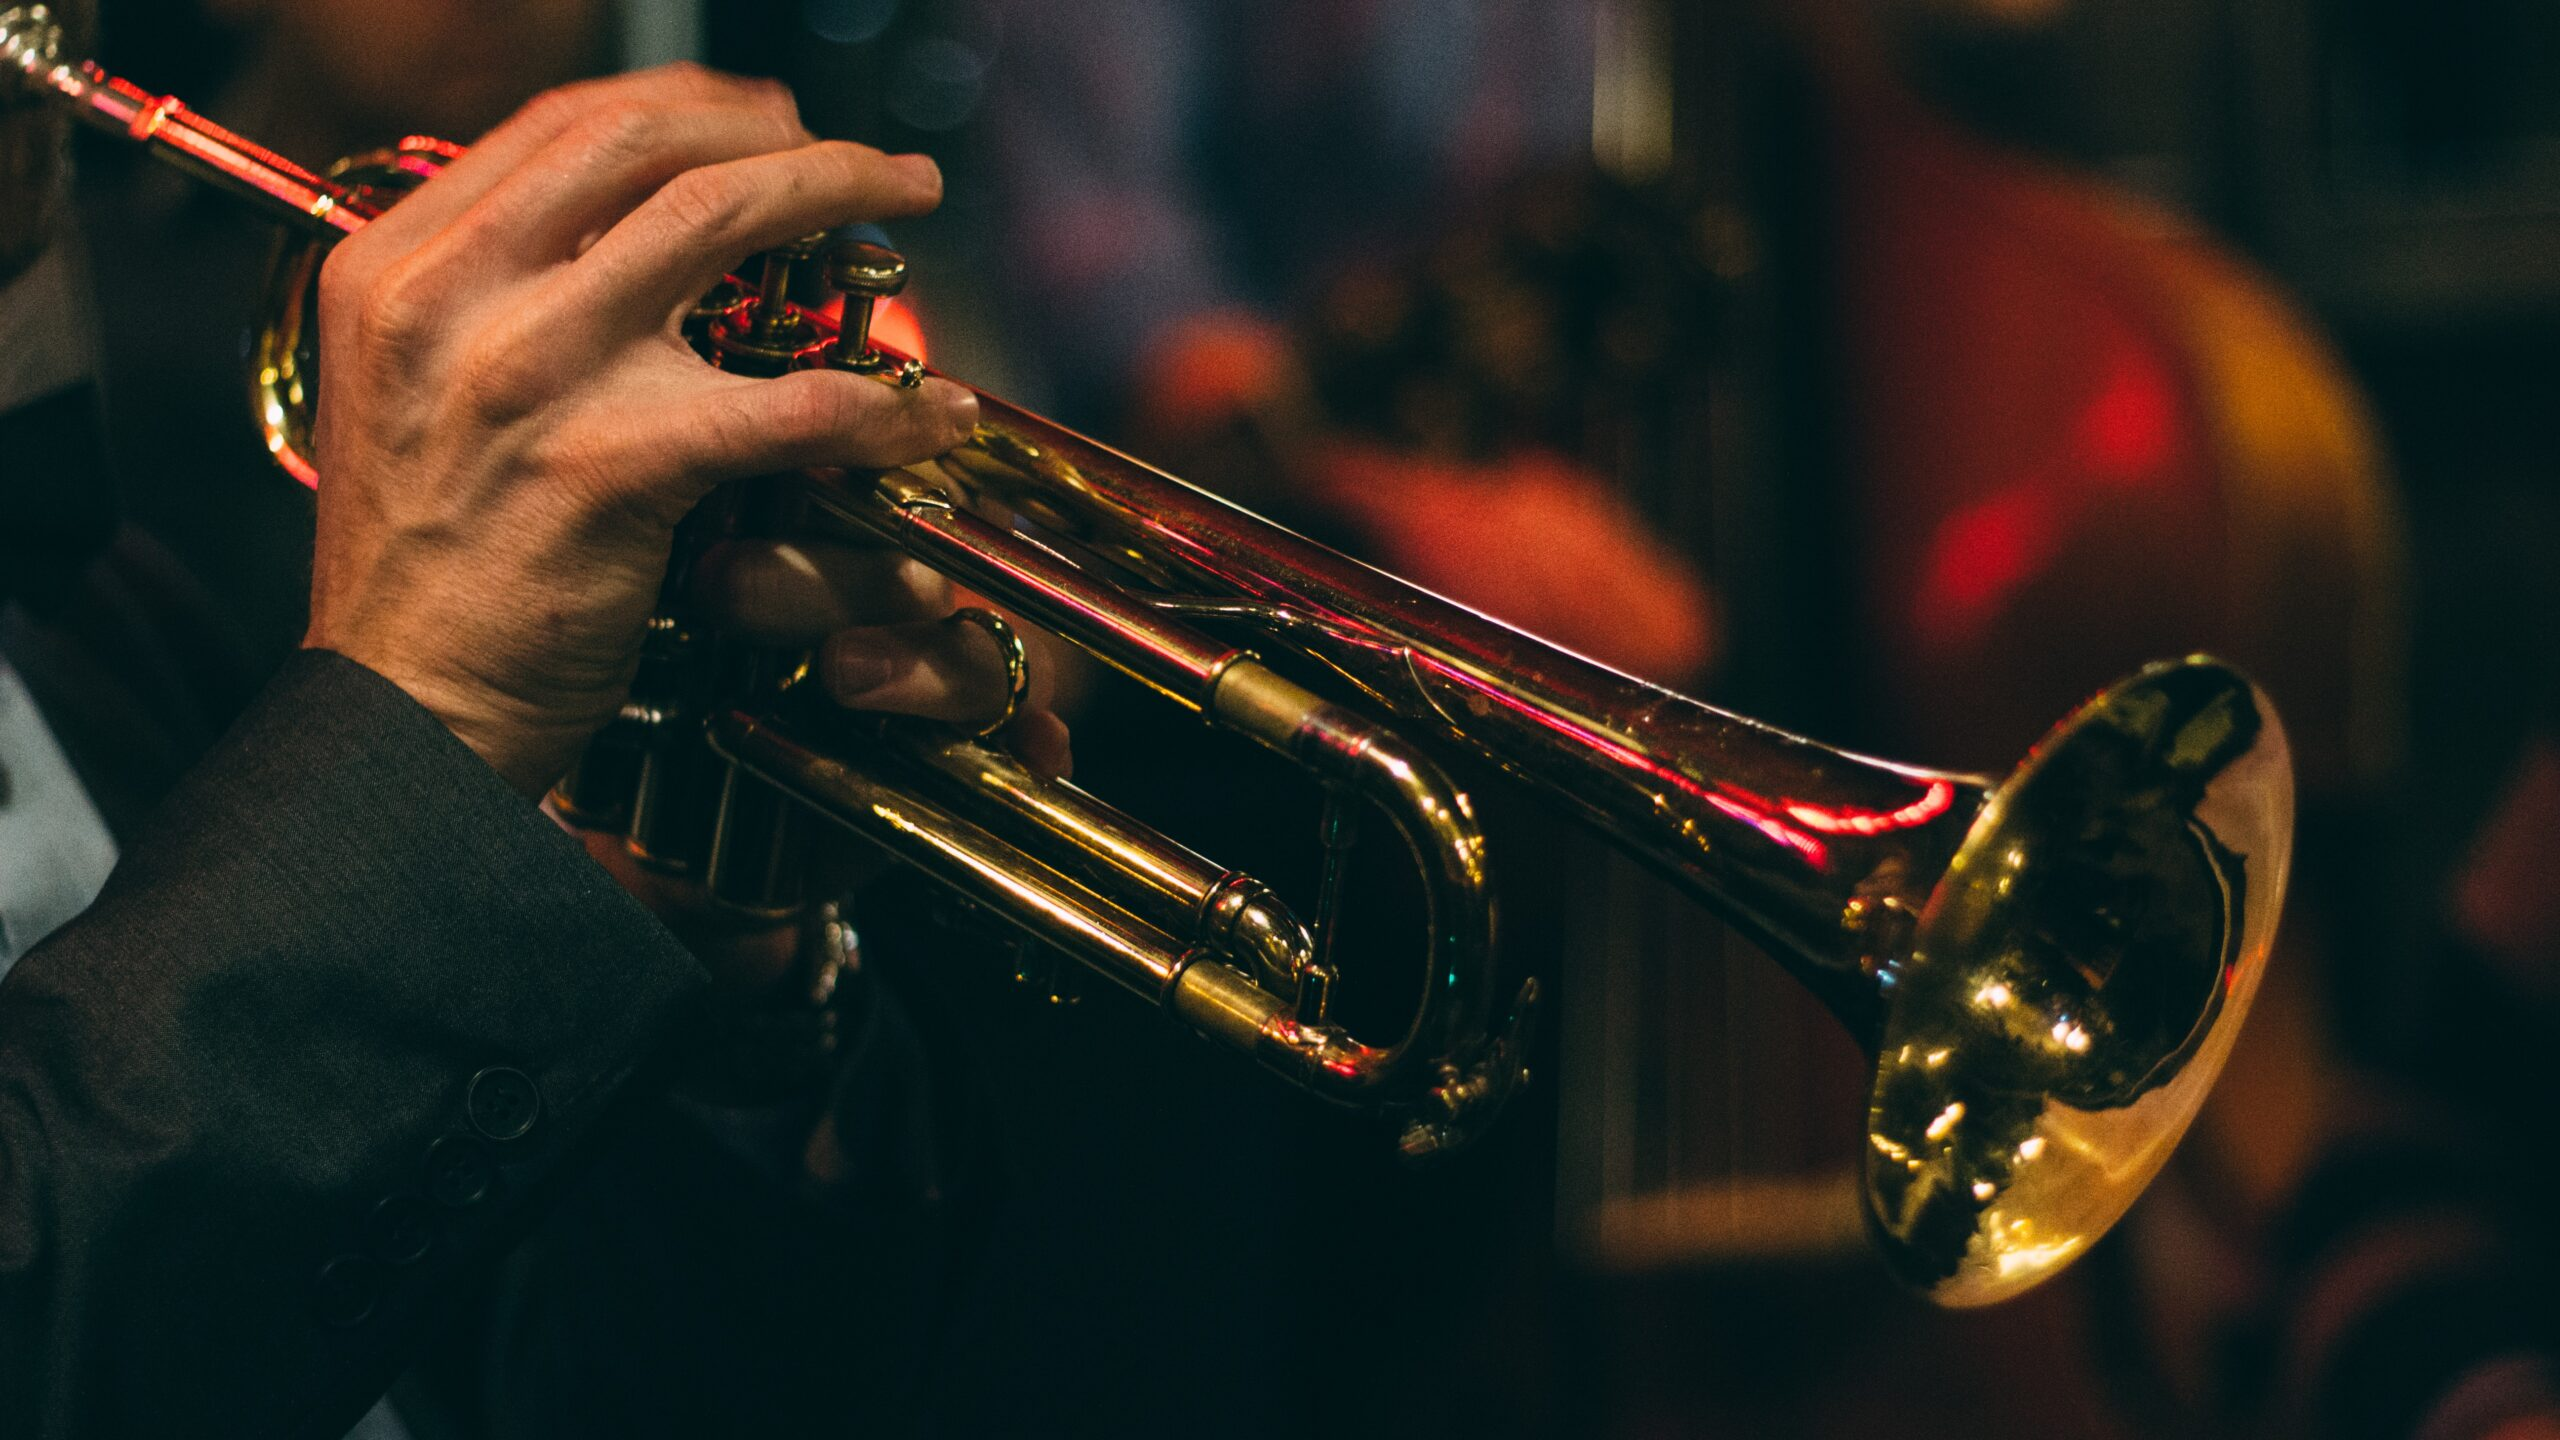 Trumpeter holding horn by Chris Bair from Unsplash